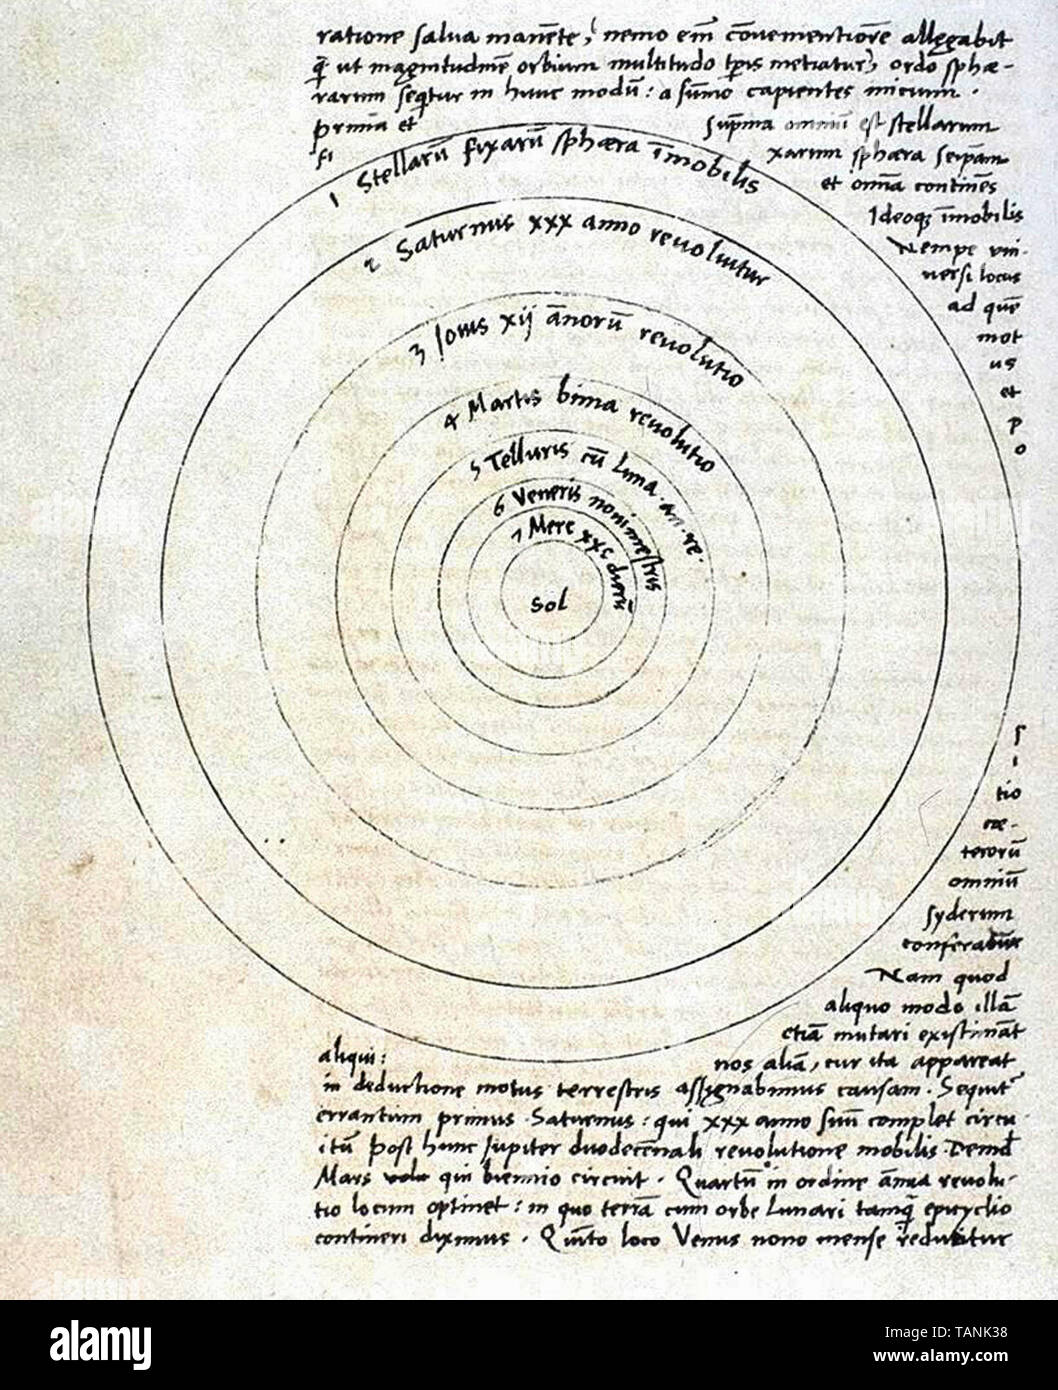 Heliocentric Theory High Resolution Stock Photography and Images - Alamy